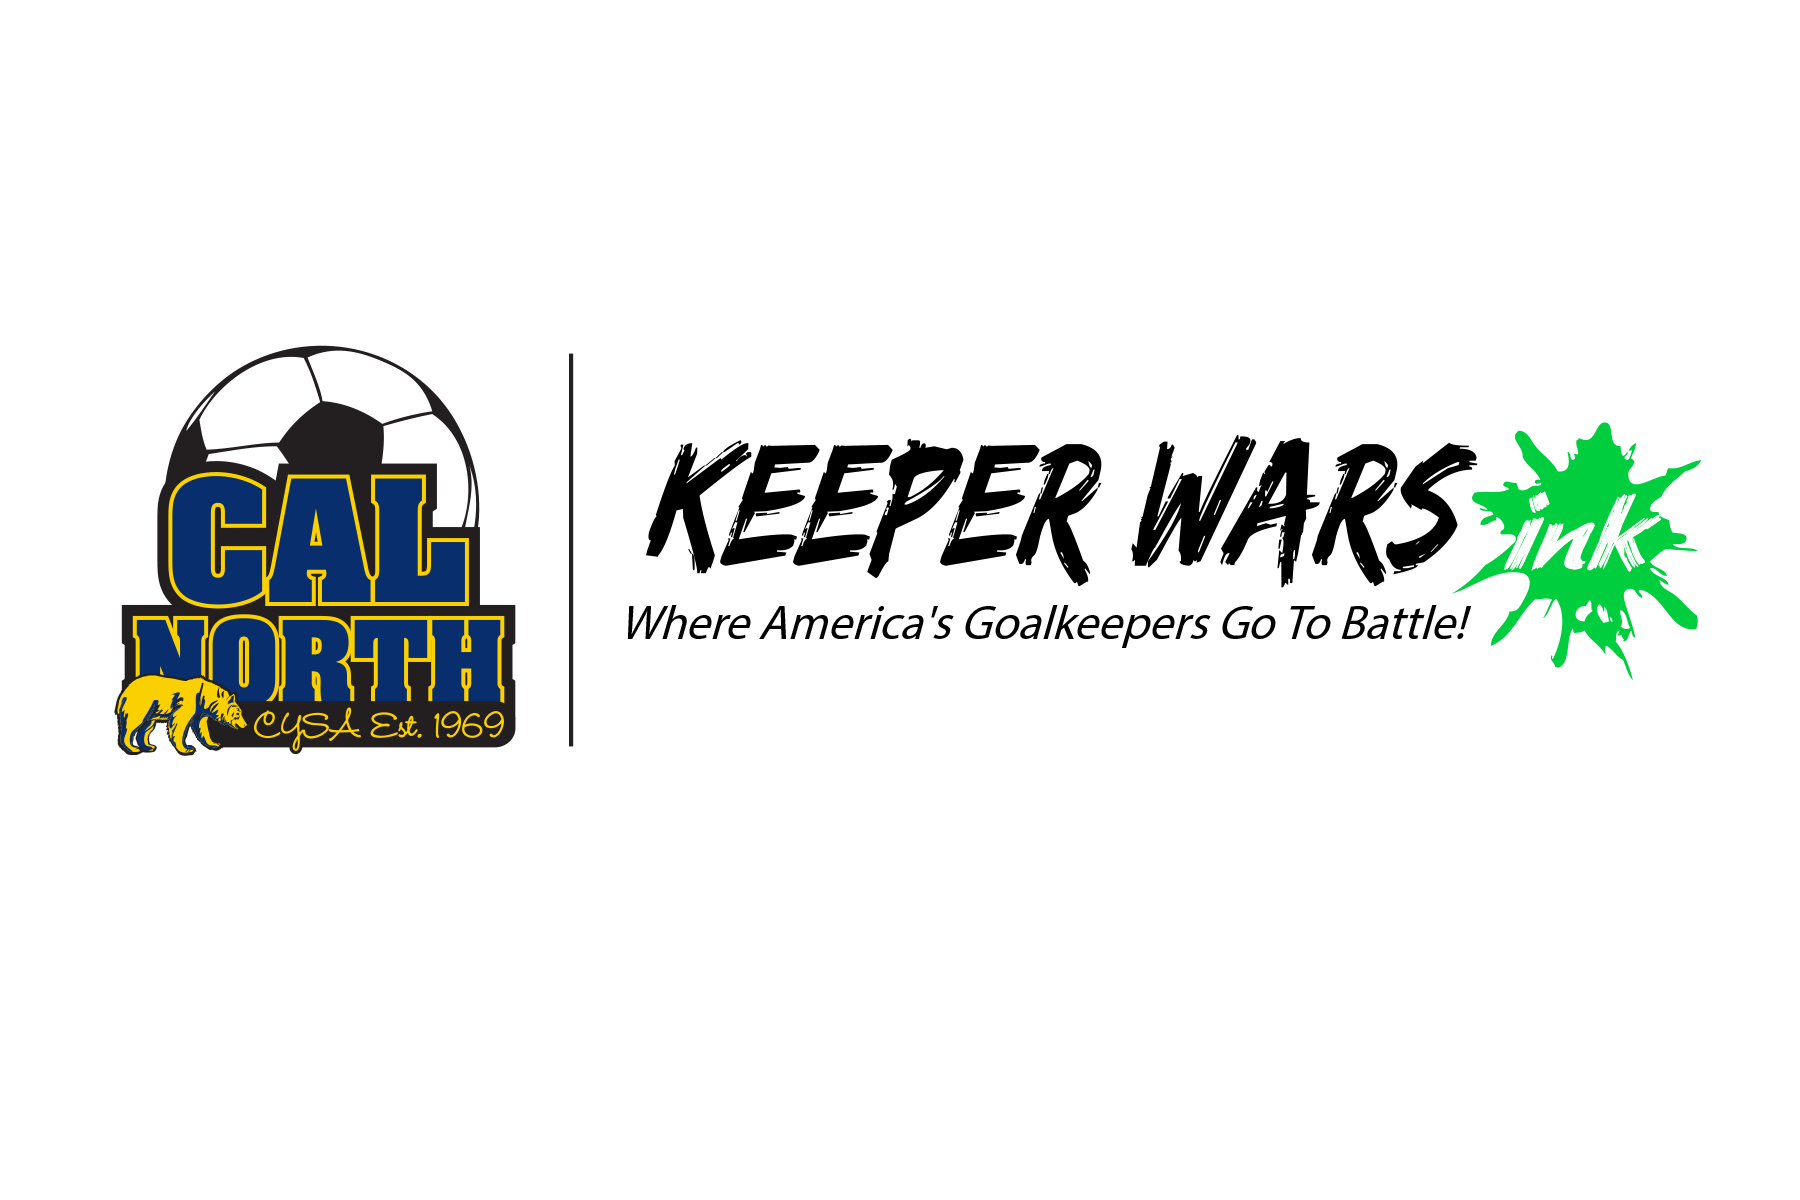 Event Keeper Wars Ink Tournament Labor Day Weekend